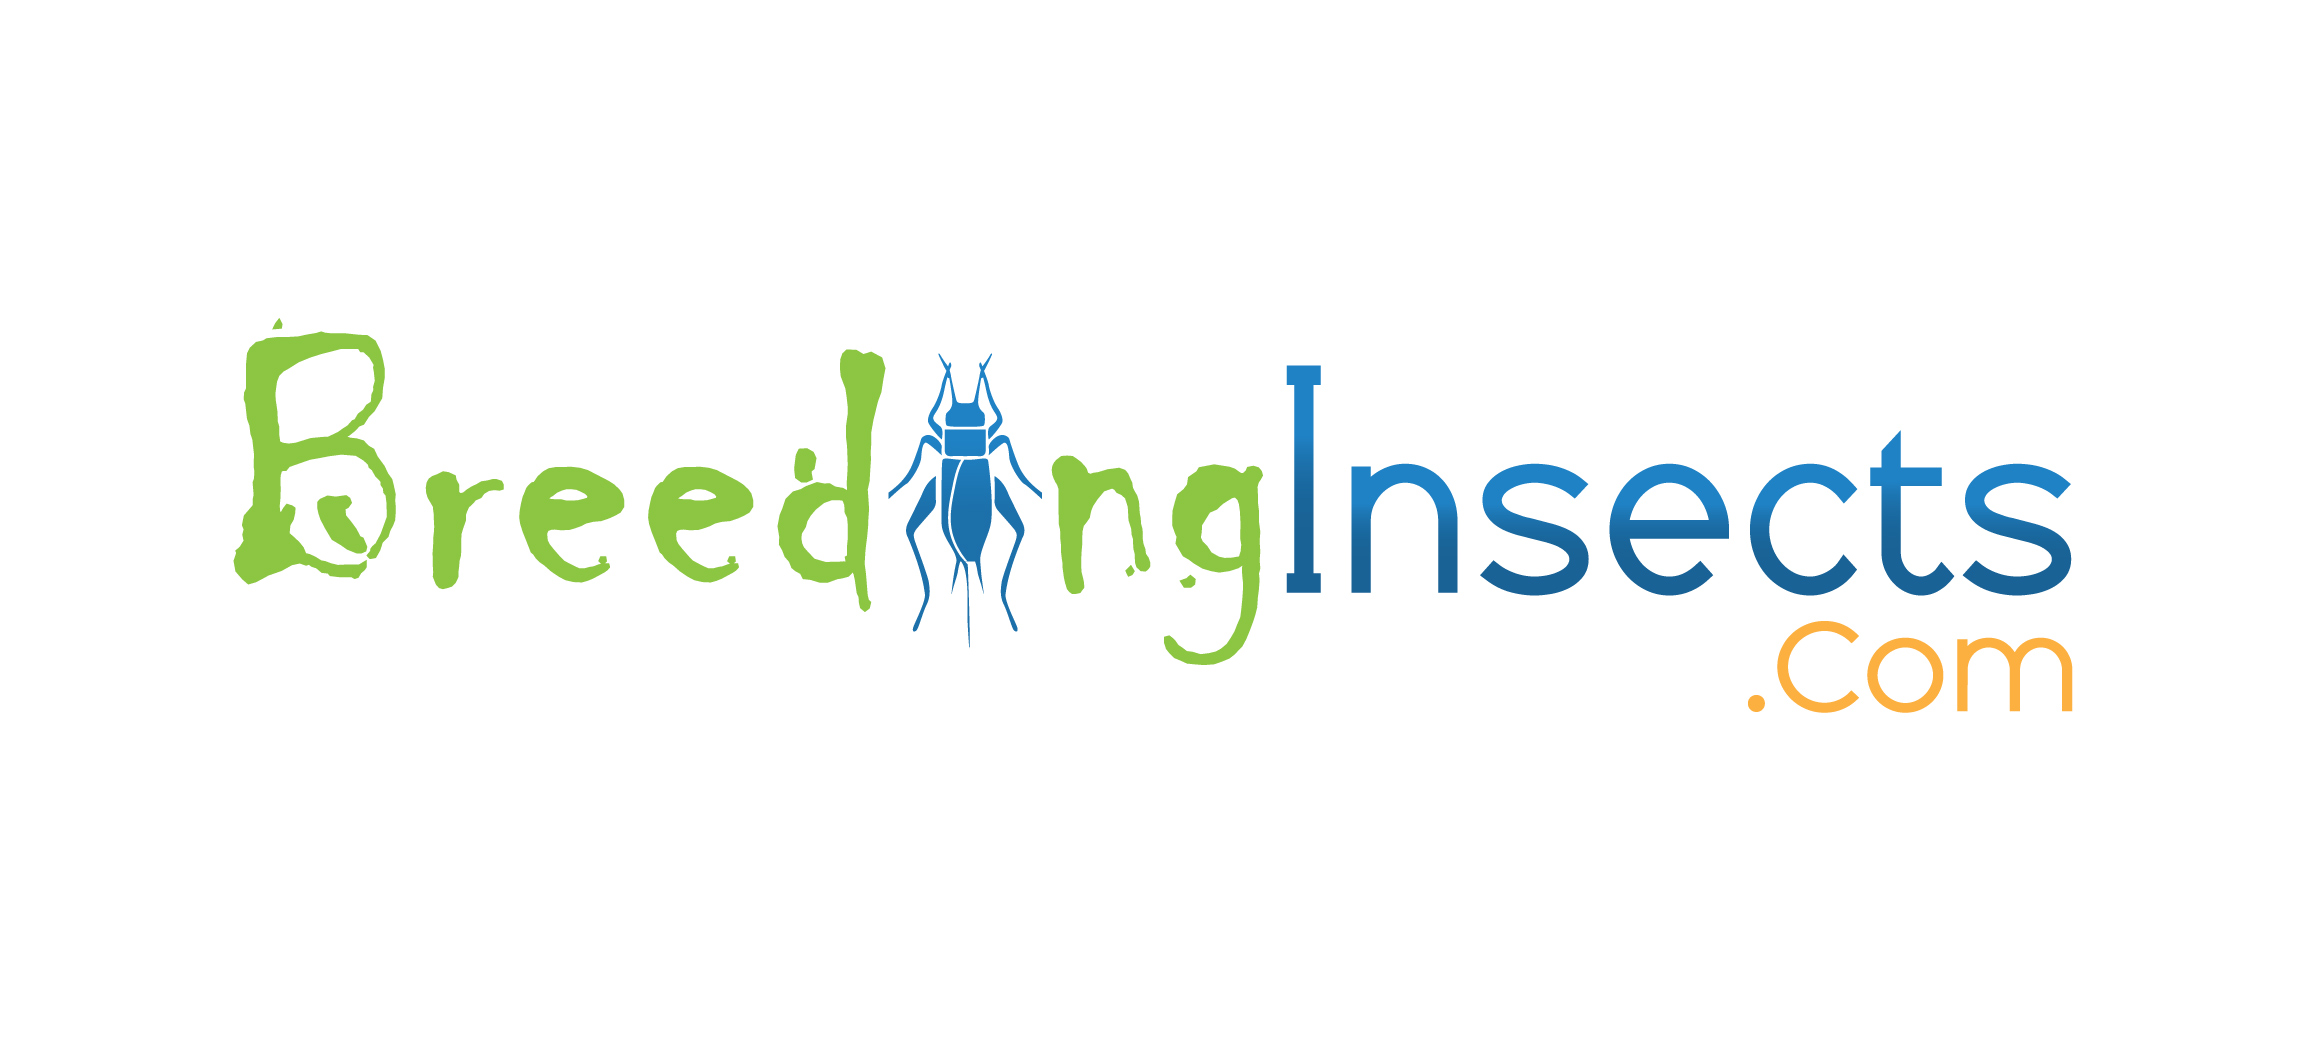 Breeding Insects